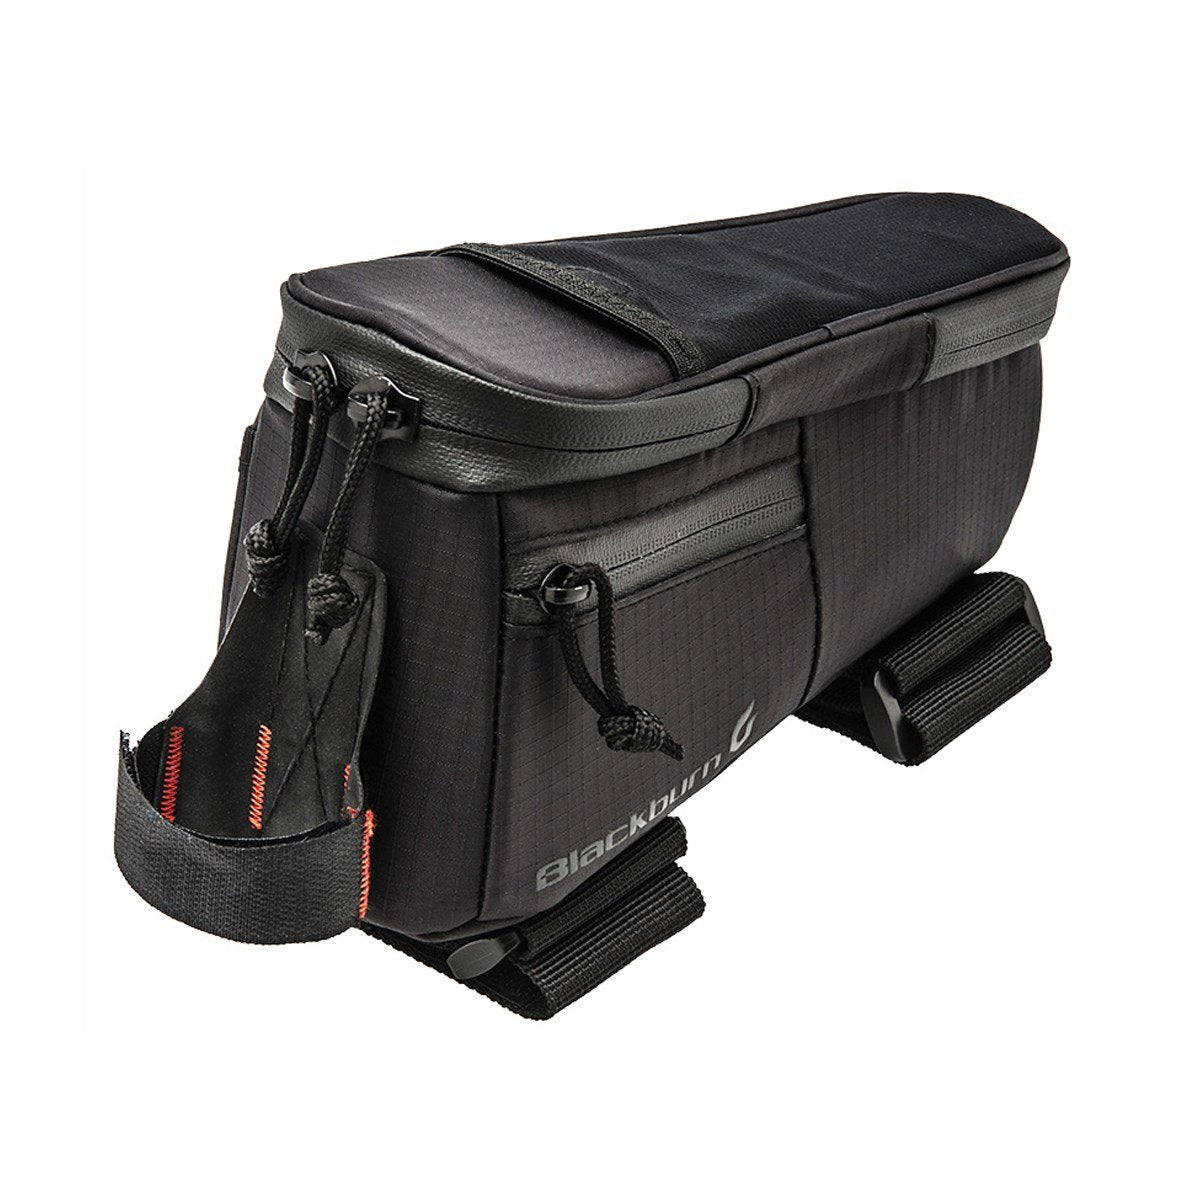 Blackburn Accessories > Bags & Seatpacks Blackburn Outpost Top Tube Bag